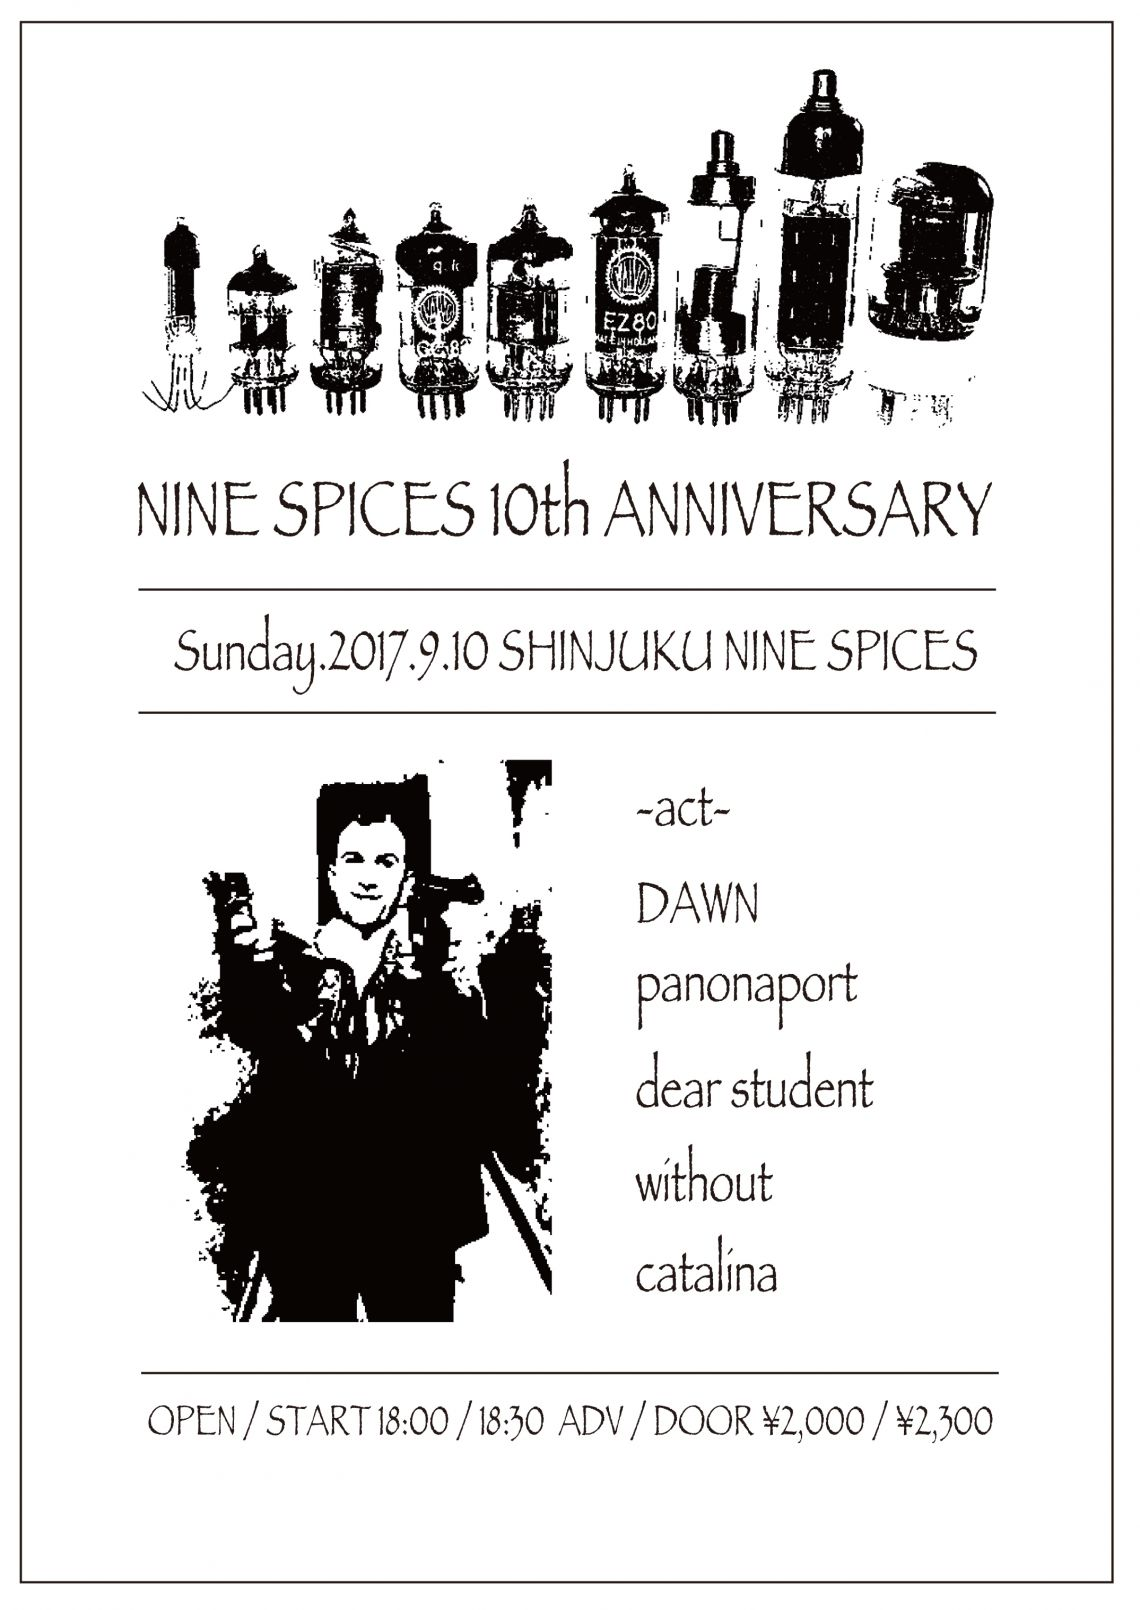 NINE SPICES 10th ANNIVERSARY